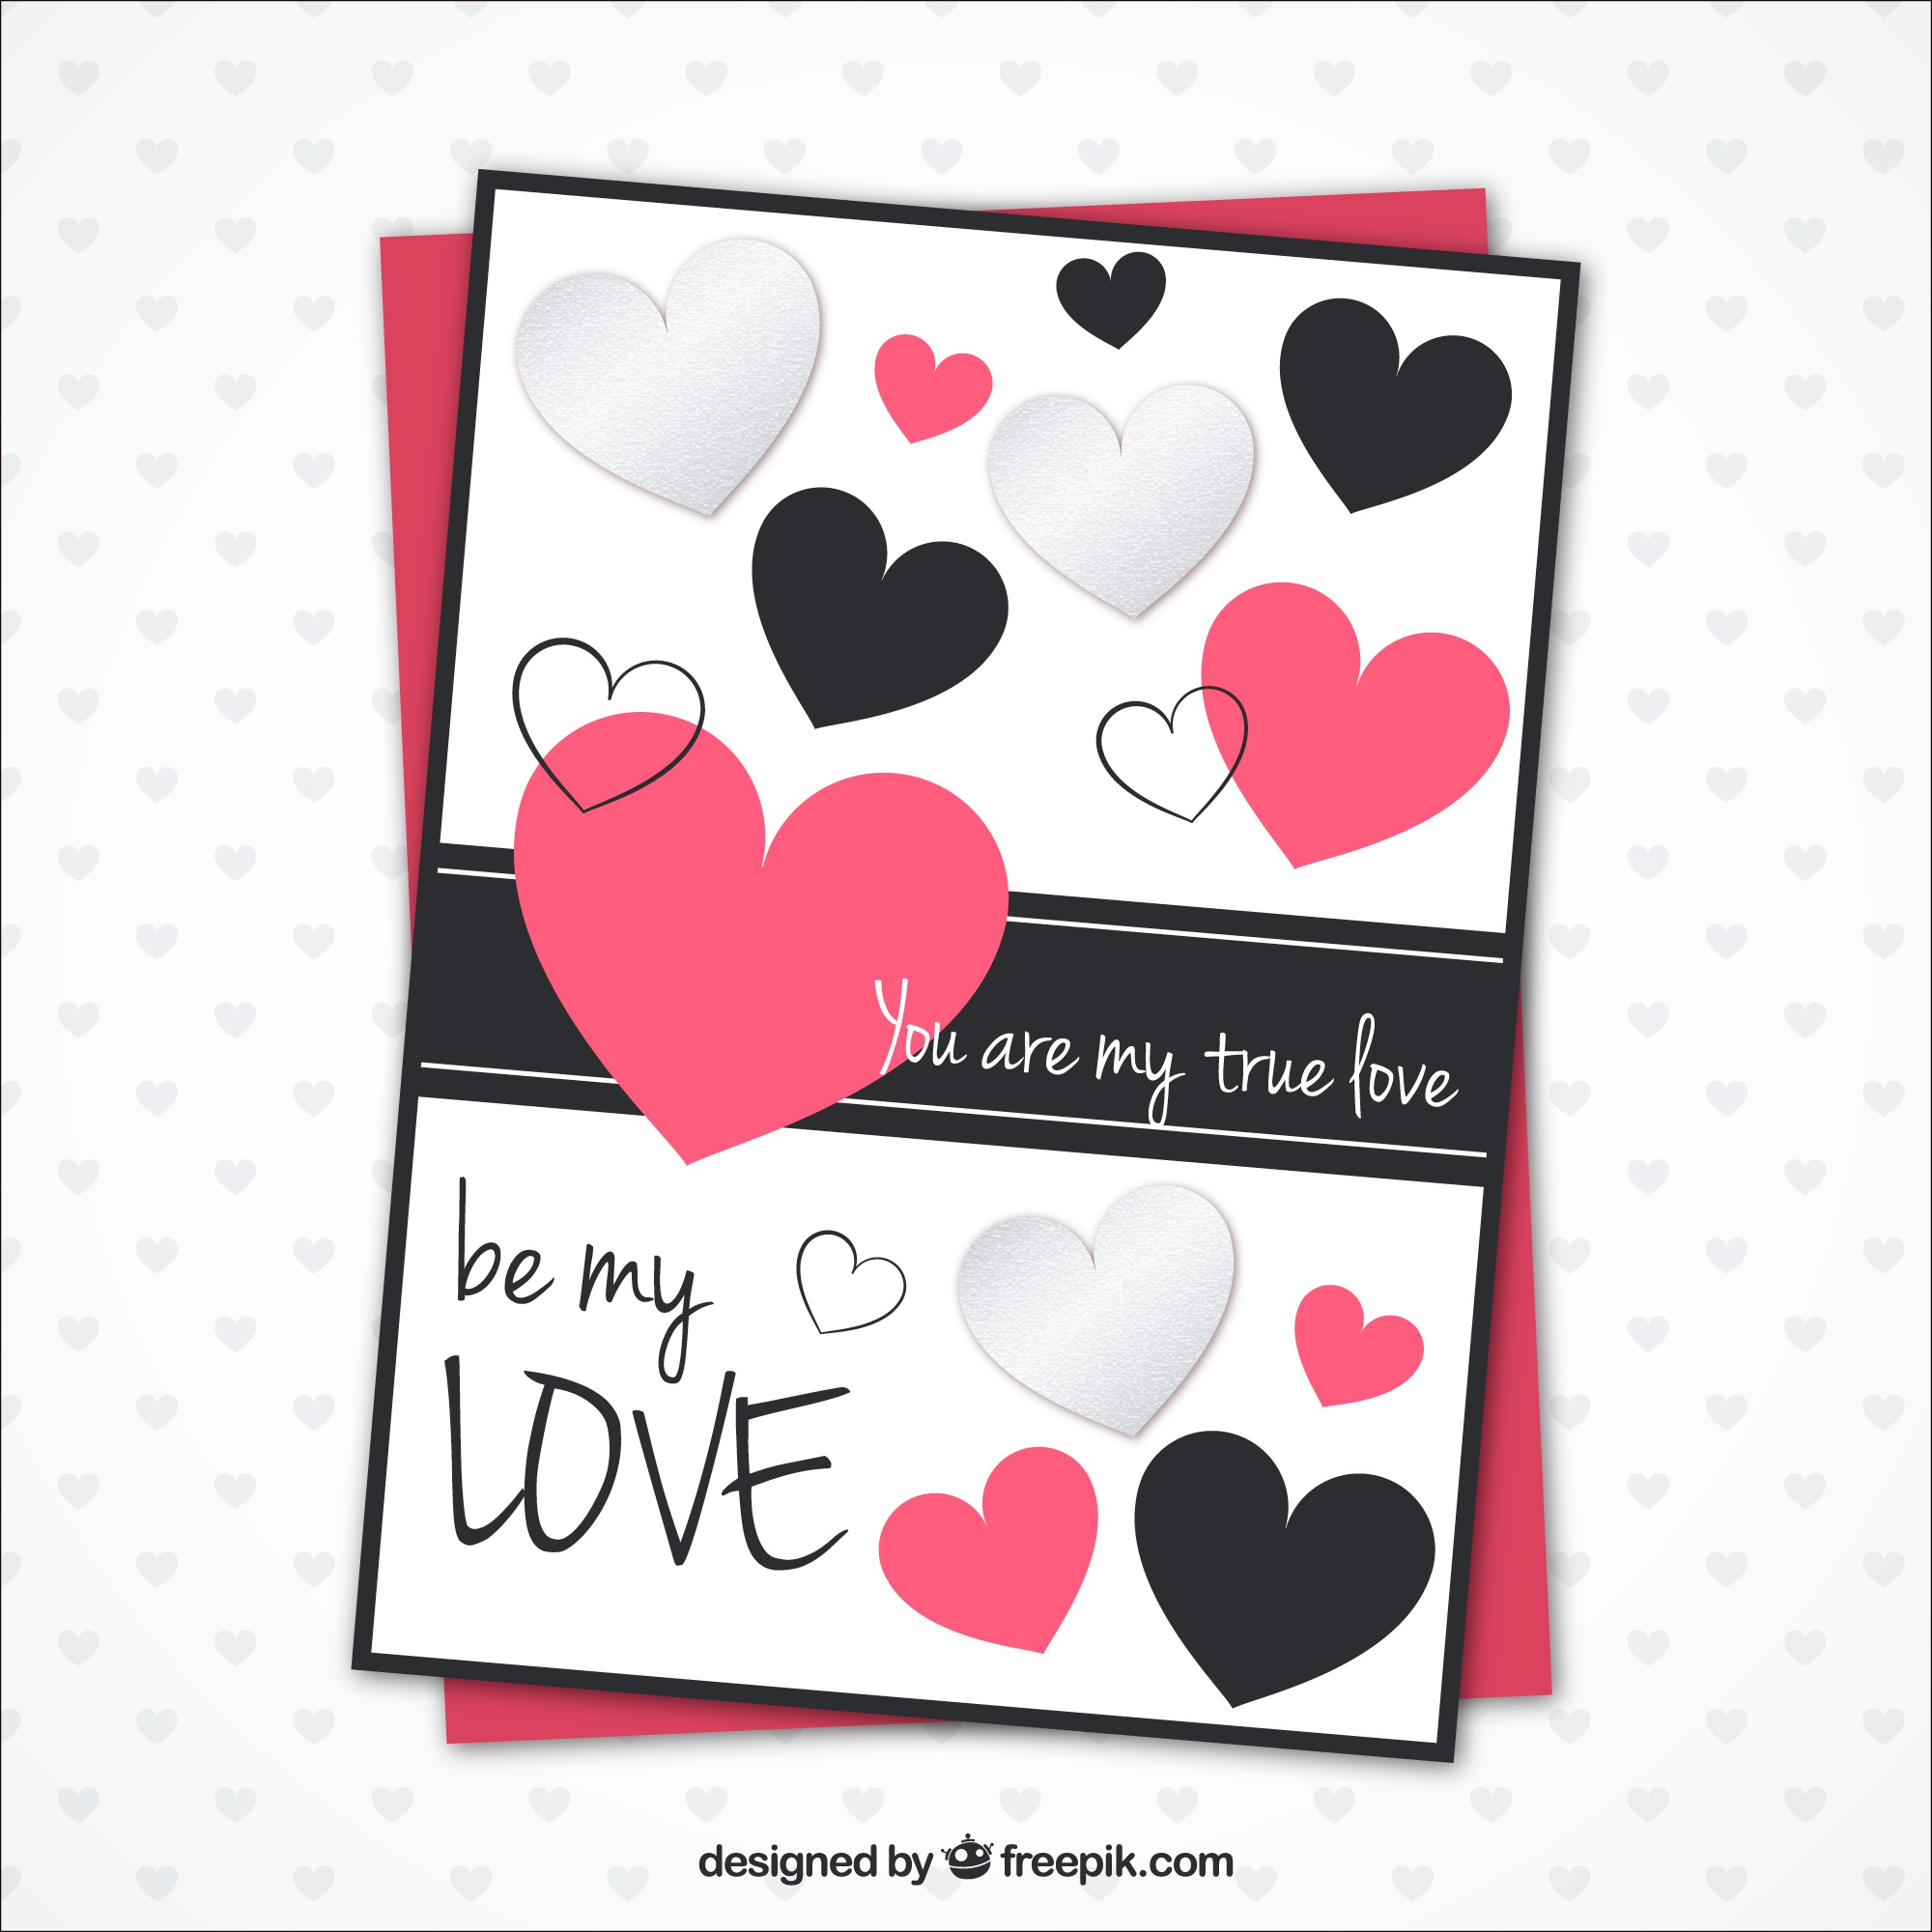 Romantic card template with decorative hearts